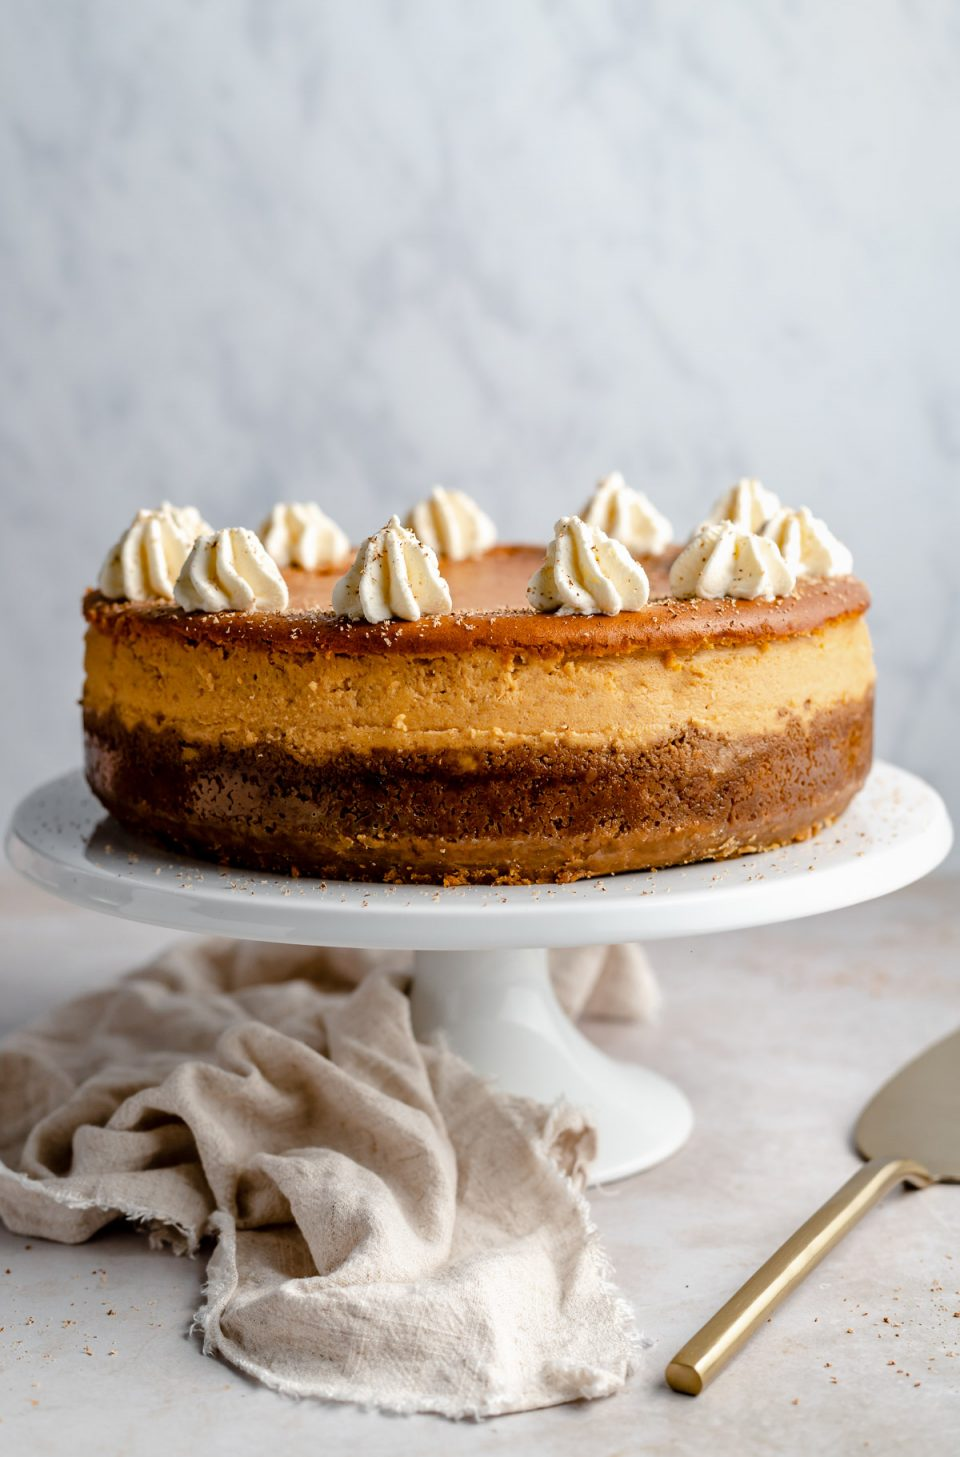 Pumpkin cheesecake with gingersnap crust, displayed on a white cake stand next to a beige linen napkin & a gold cake server.